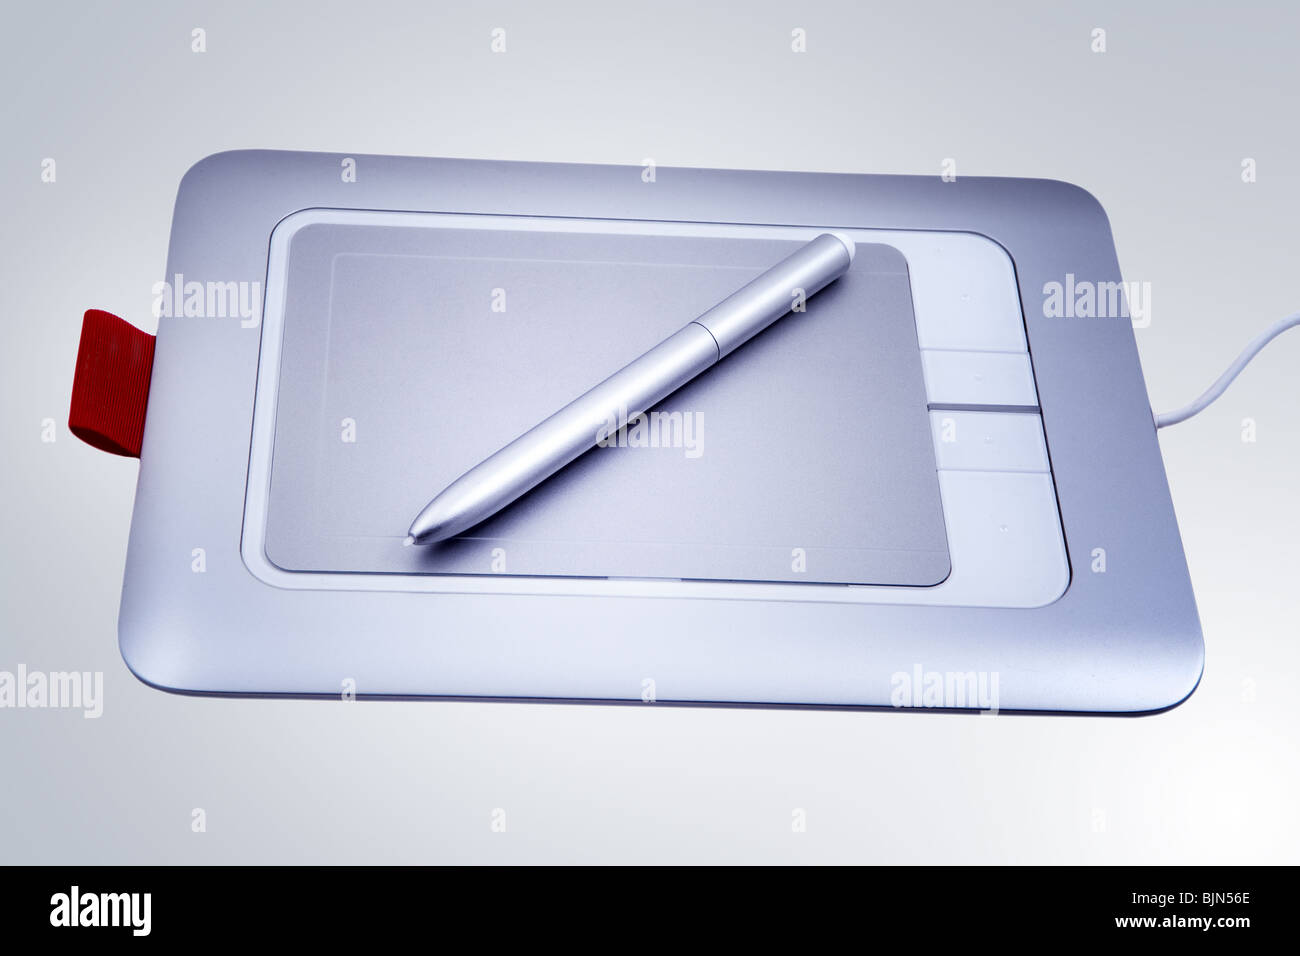 Electronic drawing pen tablet isolated on blue background - Stock Image